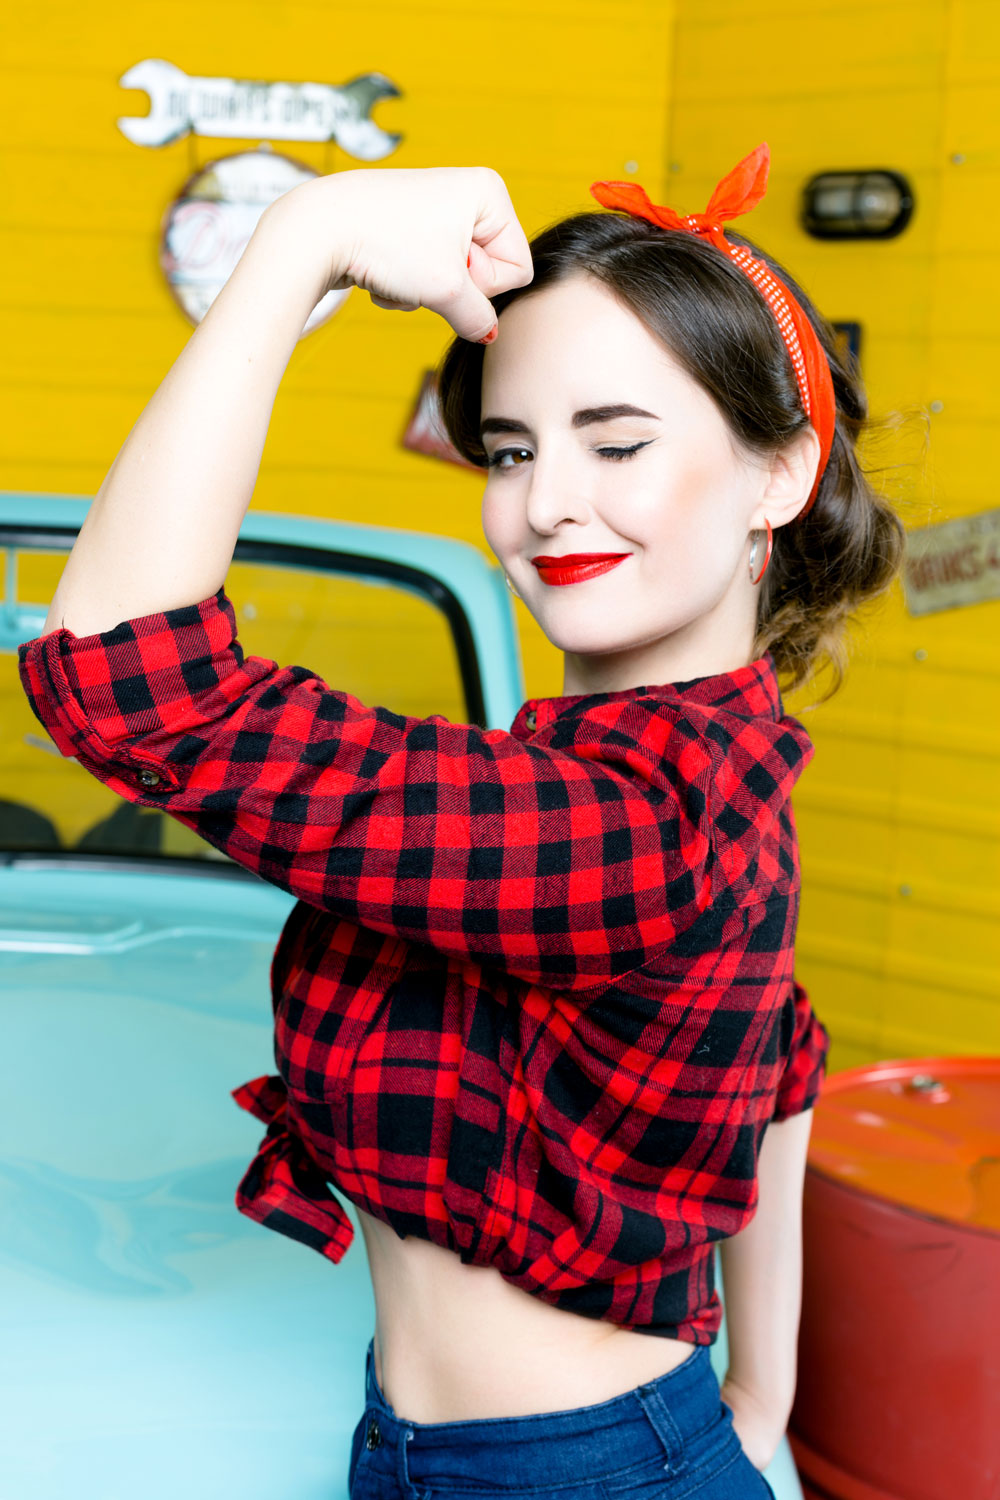 Pin Up girl with plaid shirt flexing her bicep